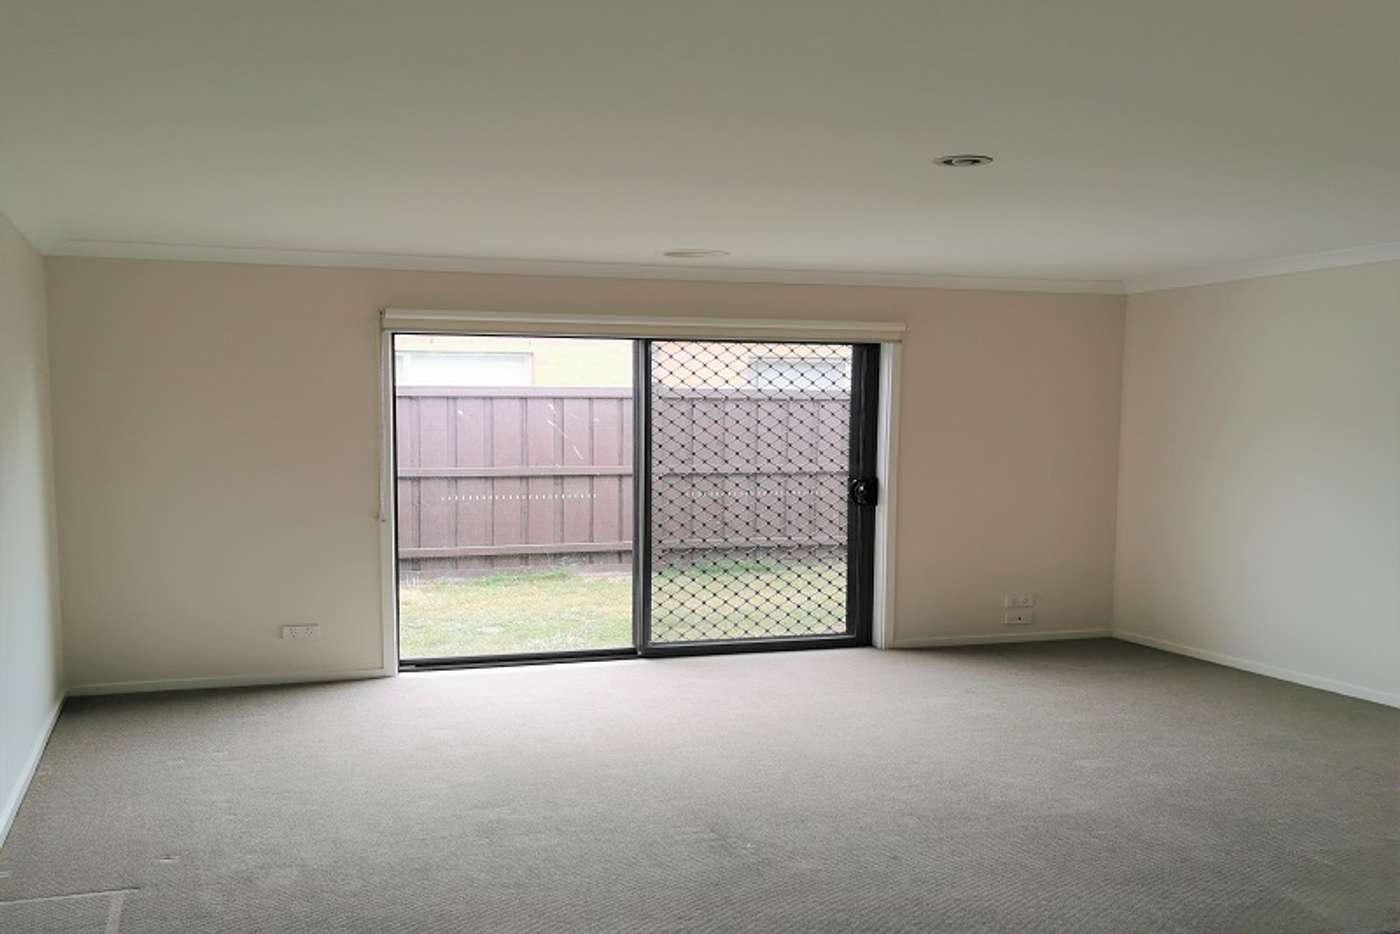 Sixth view of Homely house listing, 4 Boland Drive, Lyndhurst VIC 3975